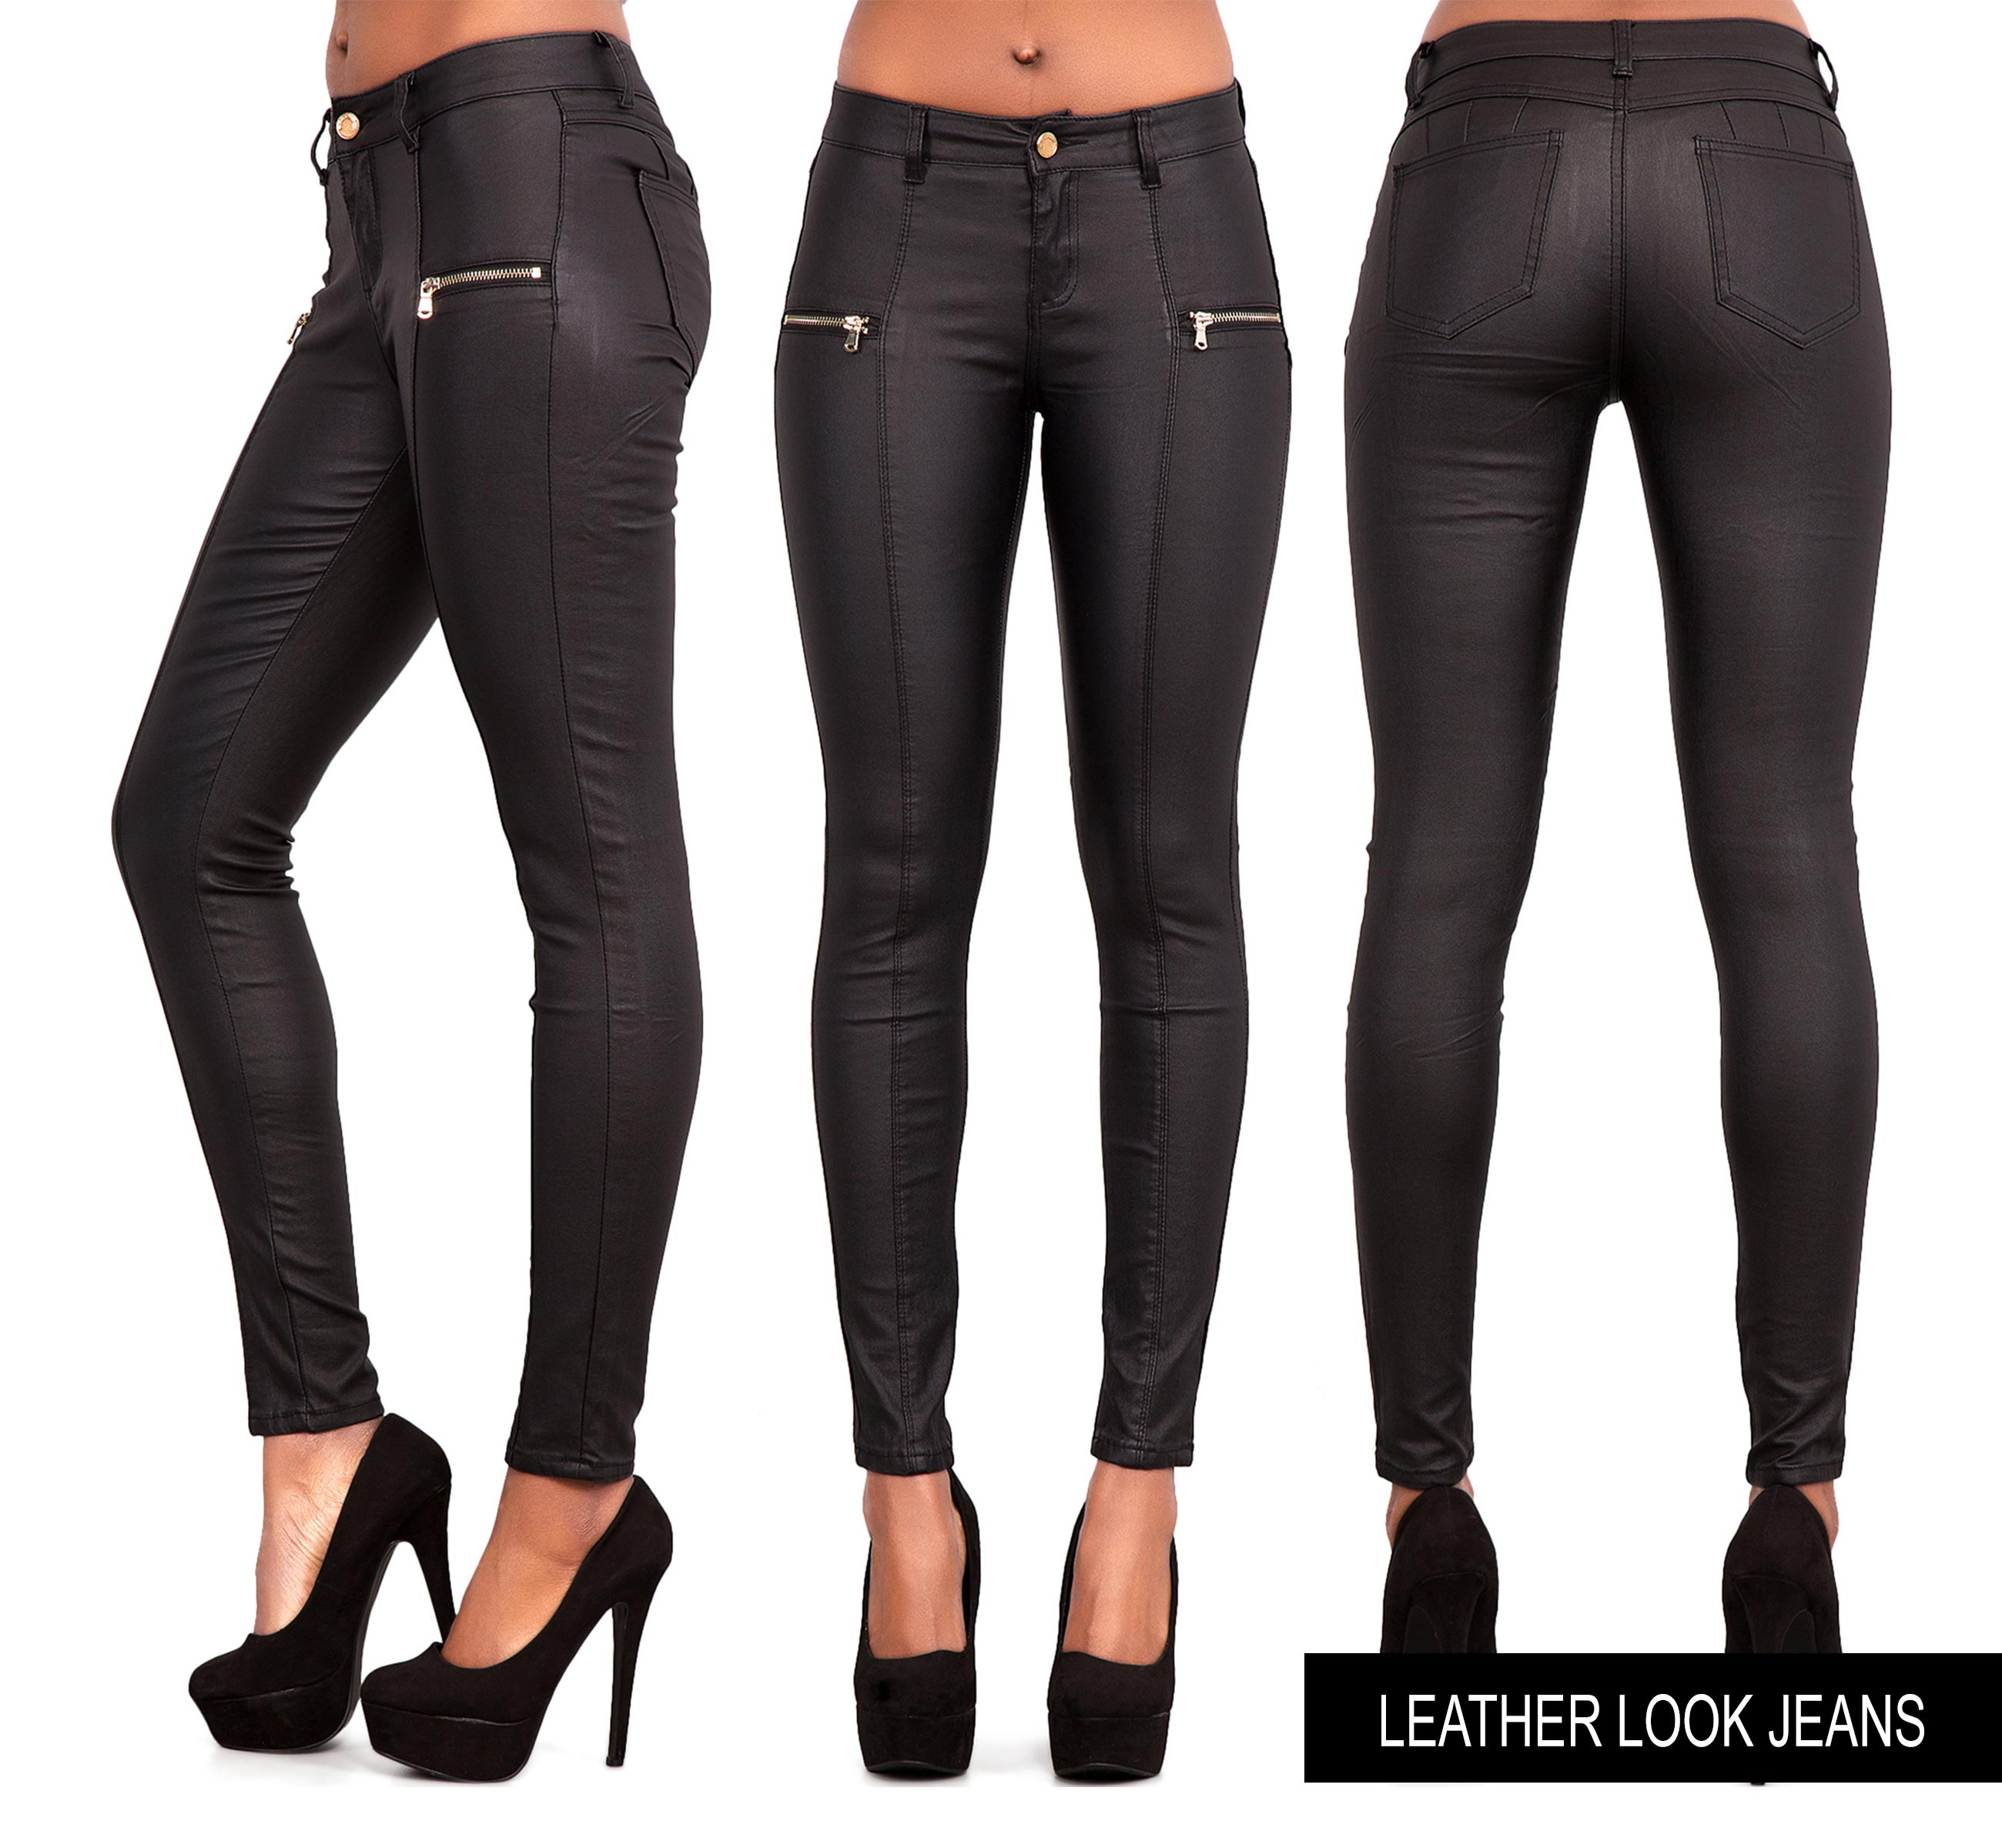 new womens leather look jeans sexy trousers ladies black slim fit size 6 22 ebay. Black Bedroom Furniture Sets. Home Design Ideas